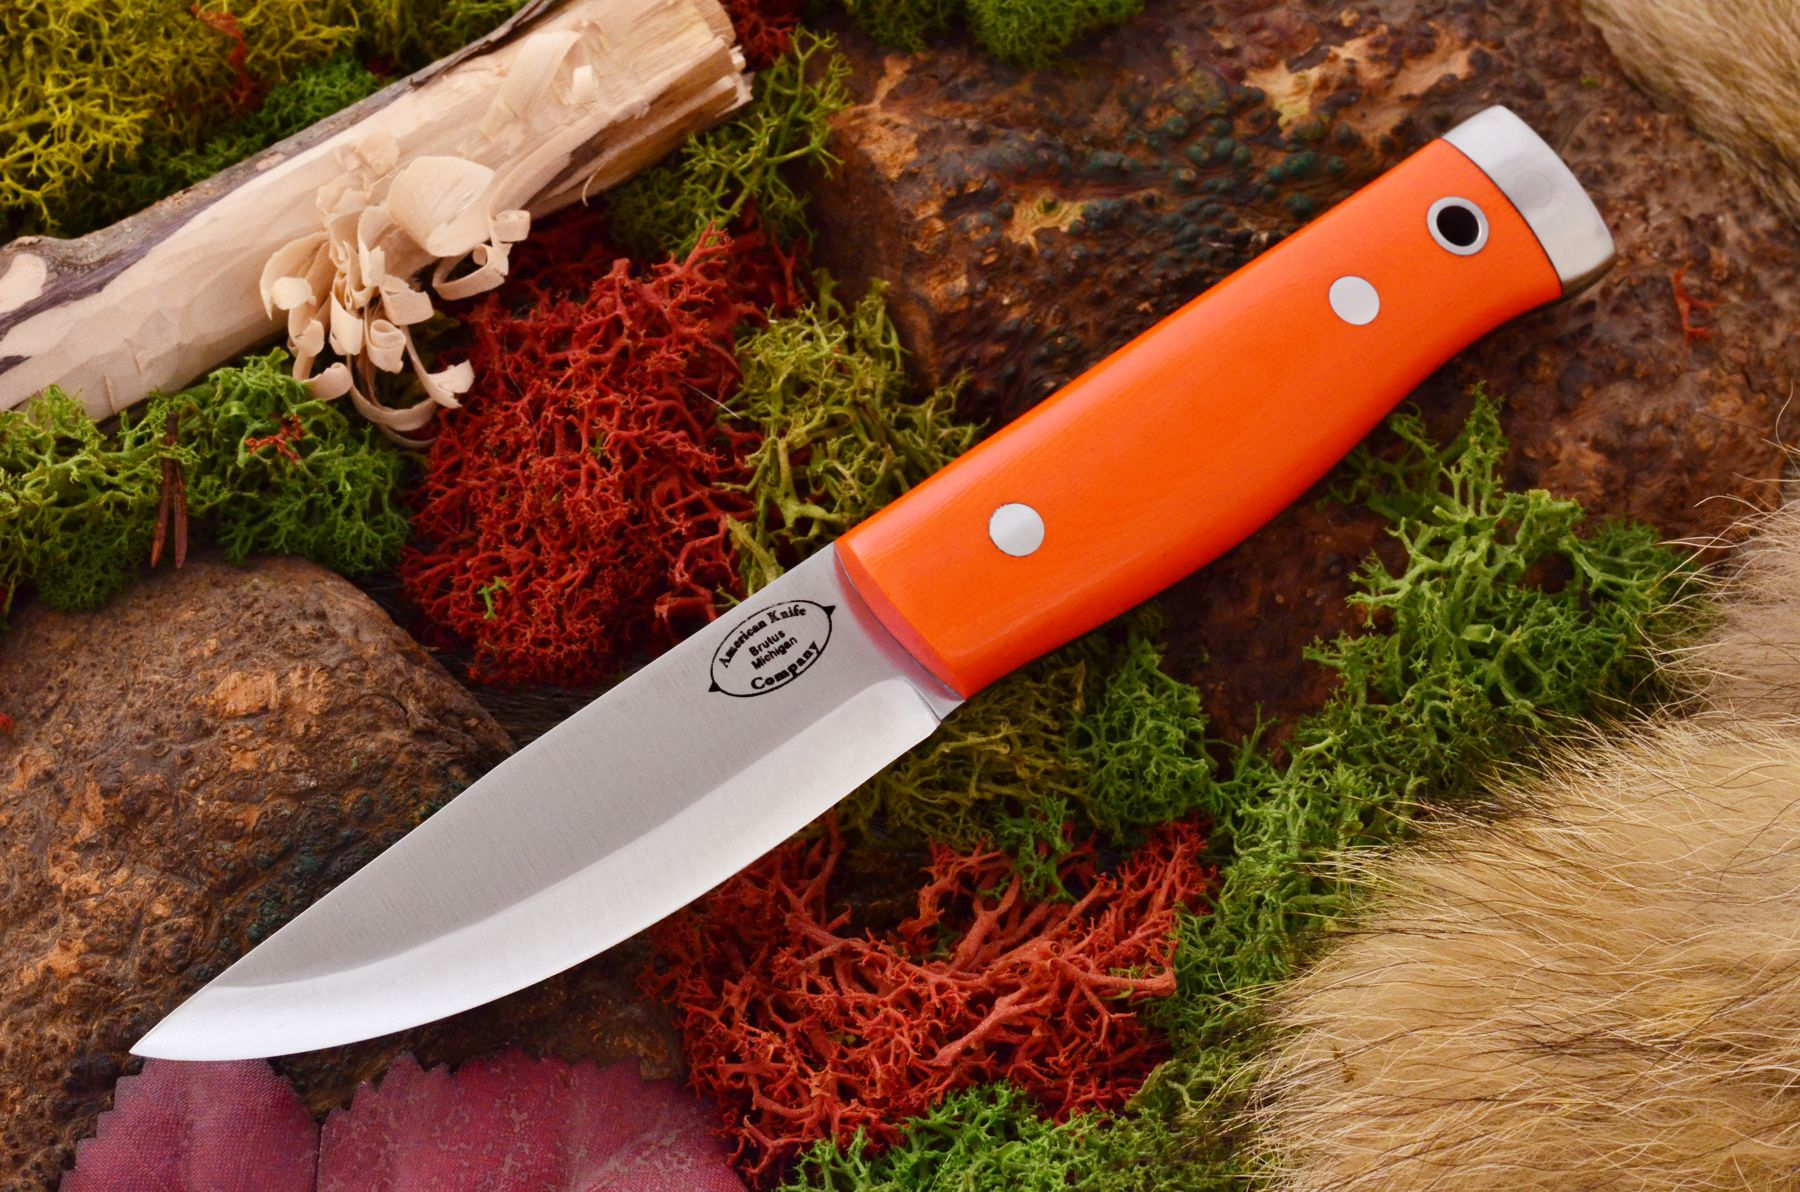 akc forest compact blaze orange g10 329.95